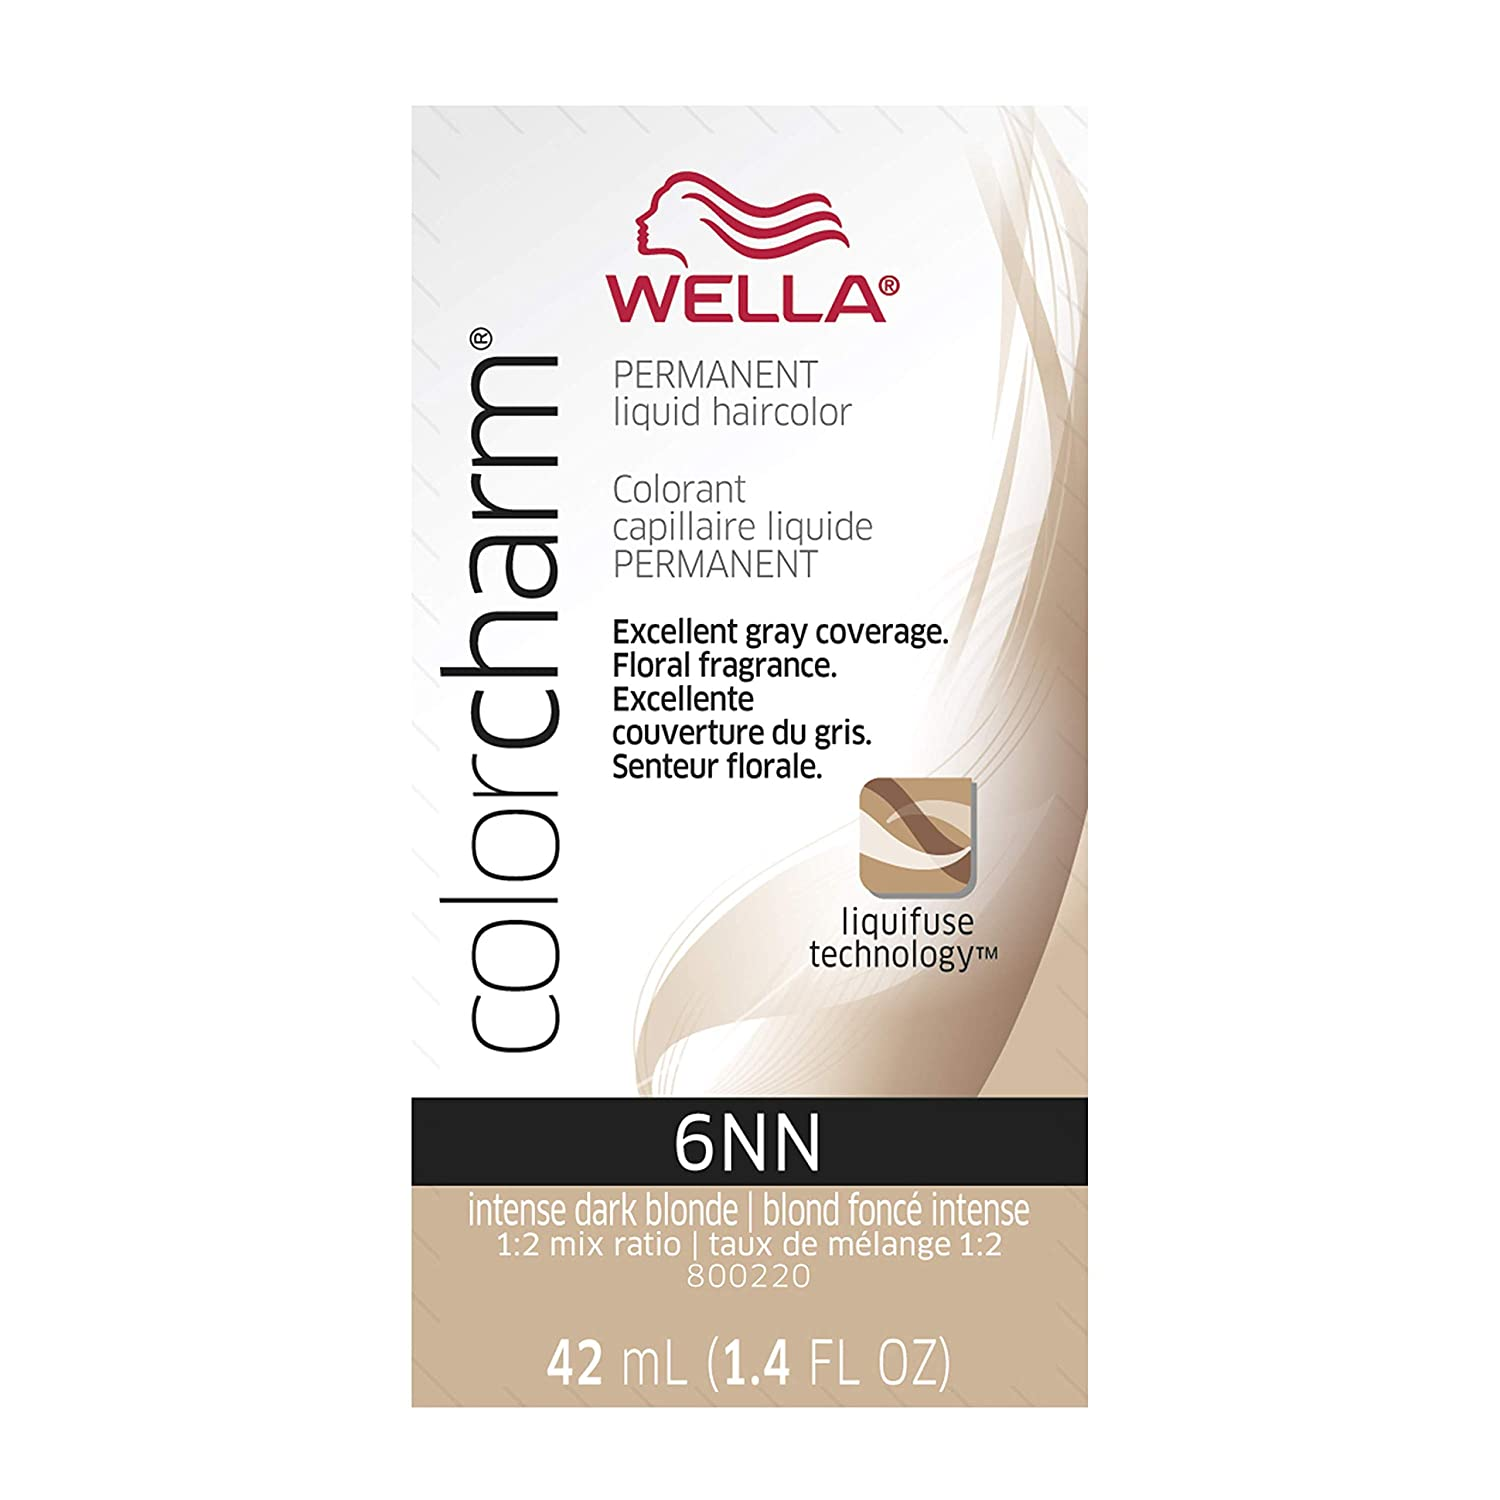 Wella Charm Liquid Permanent Hair Color, 445/5rg Light Auburn